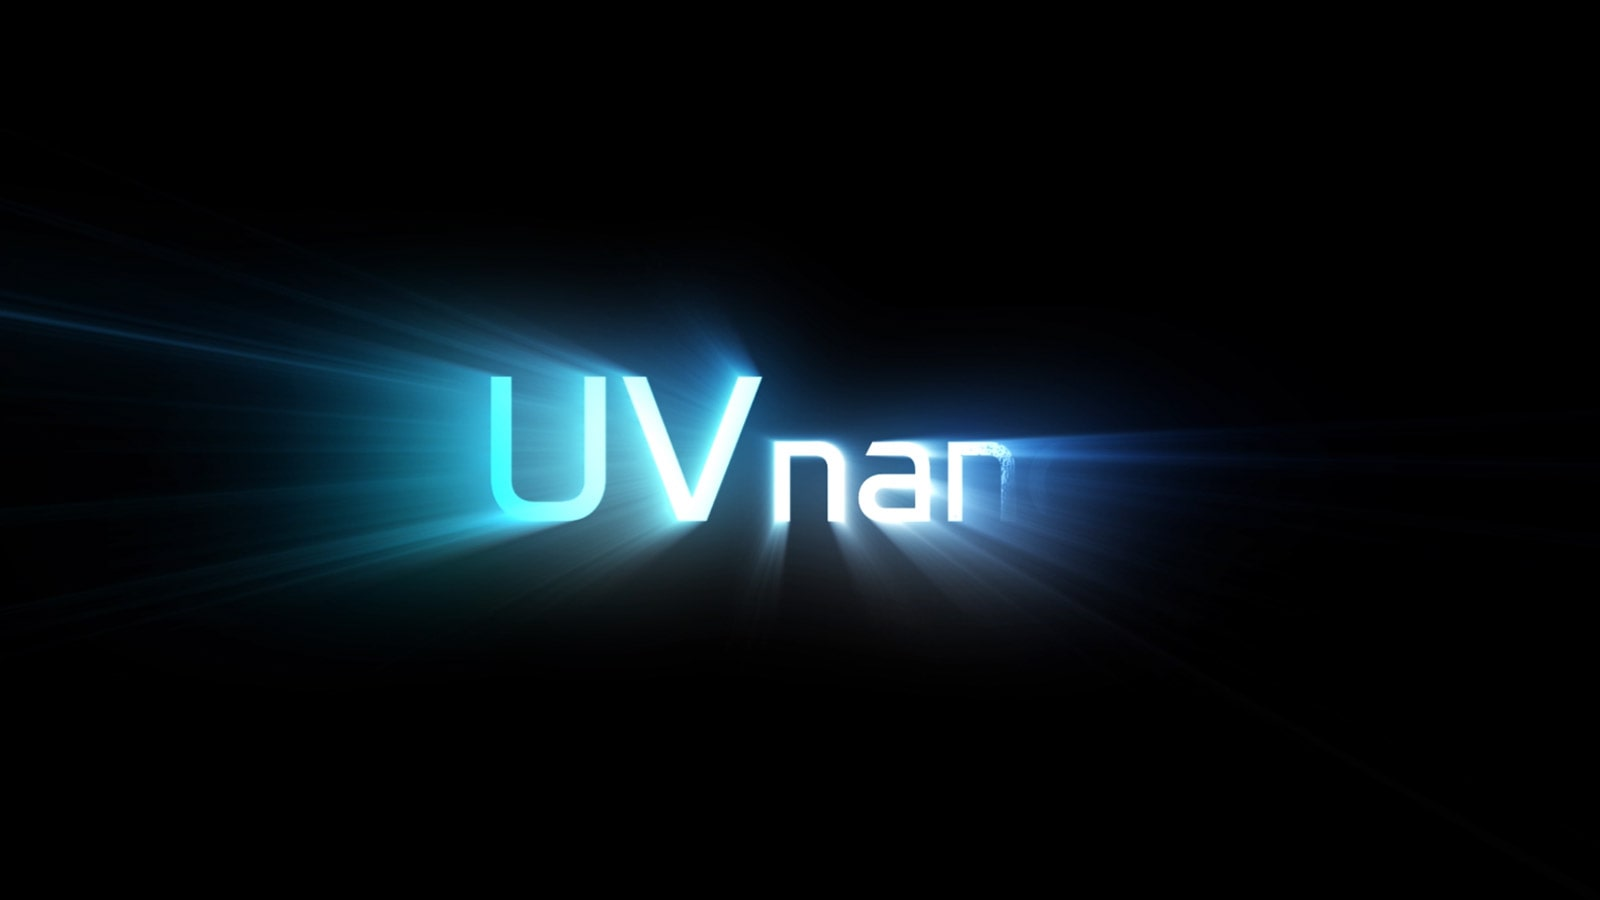 UV nano logos are shining and cut to close up of earbuds being sanitized with UV nano light.